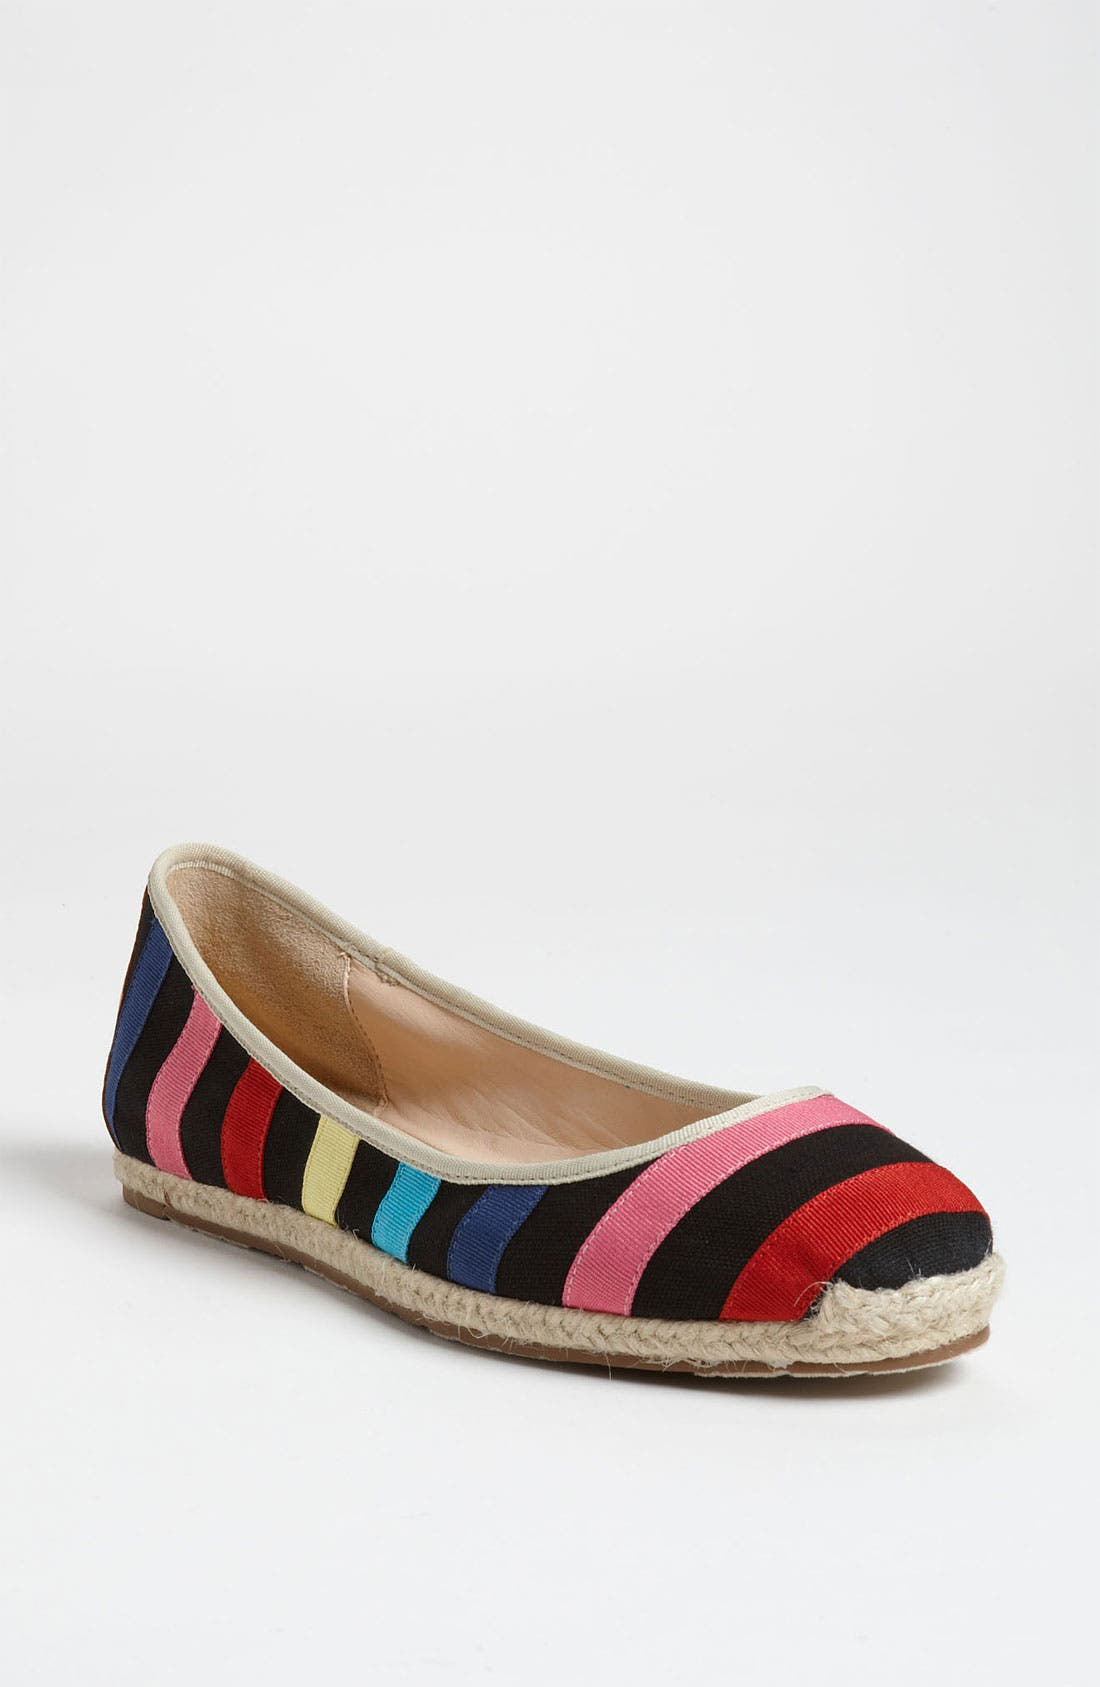 Alternate Image 1 Selected - kate spade new york 'vivi' flat